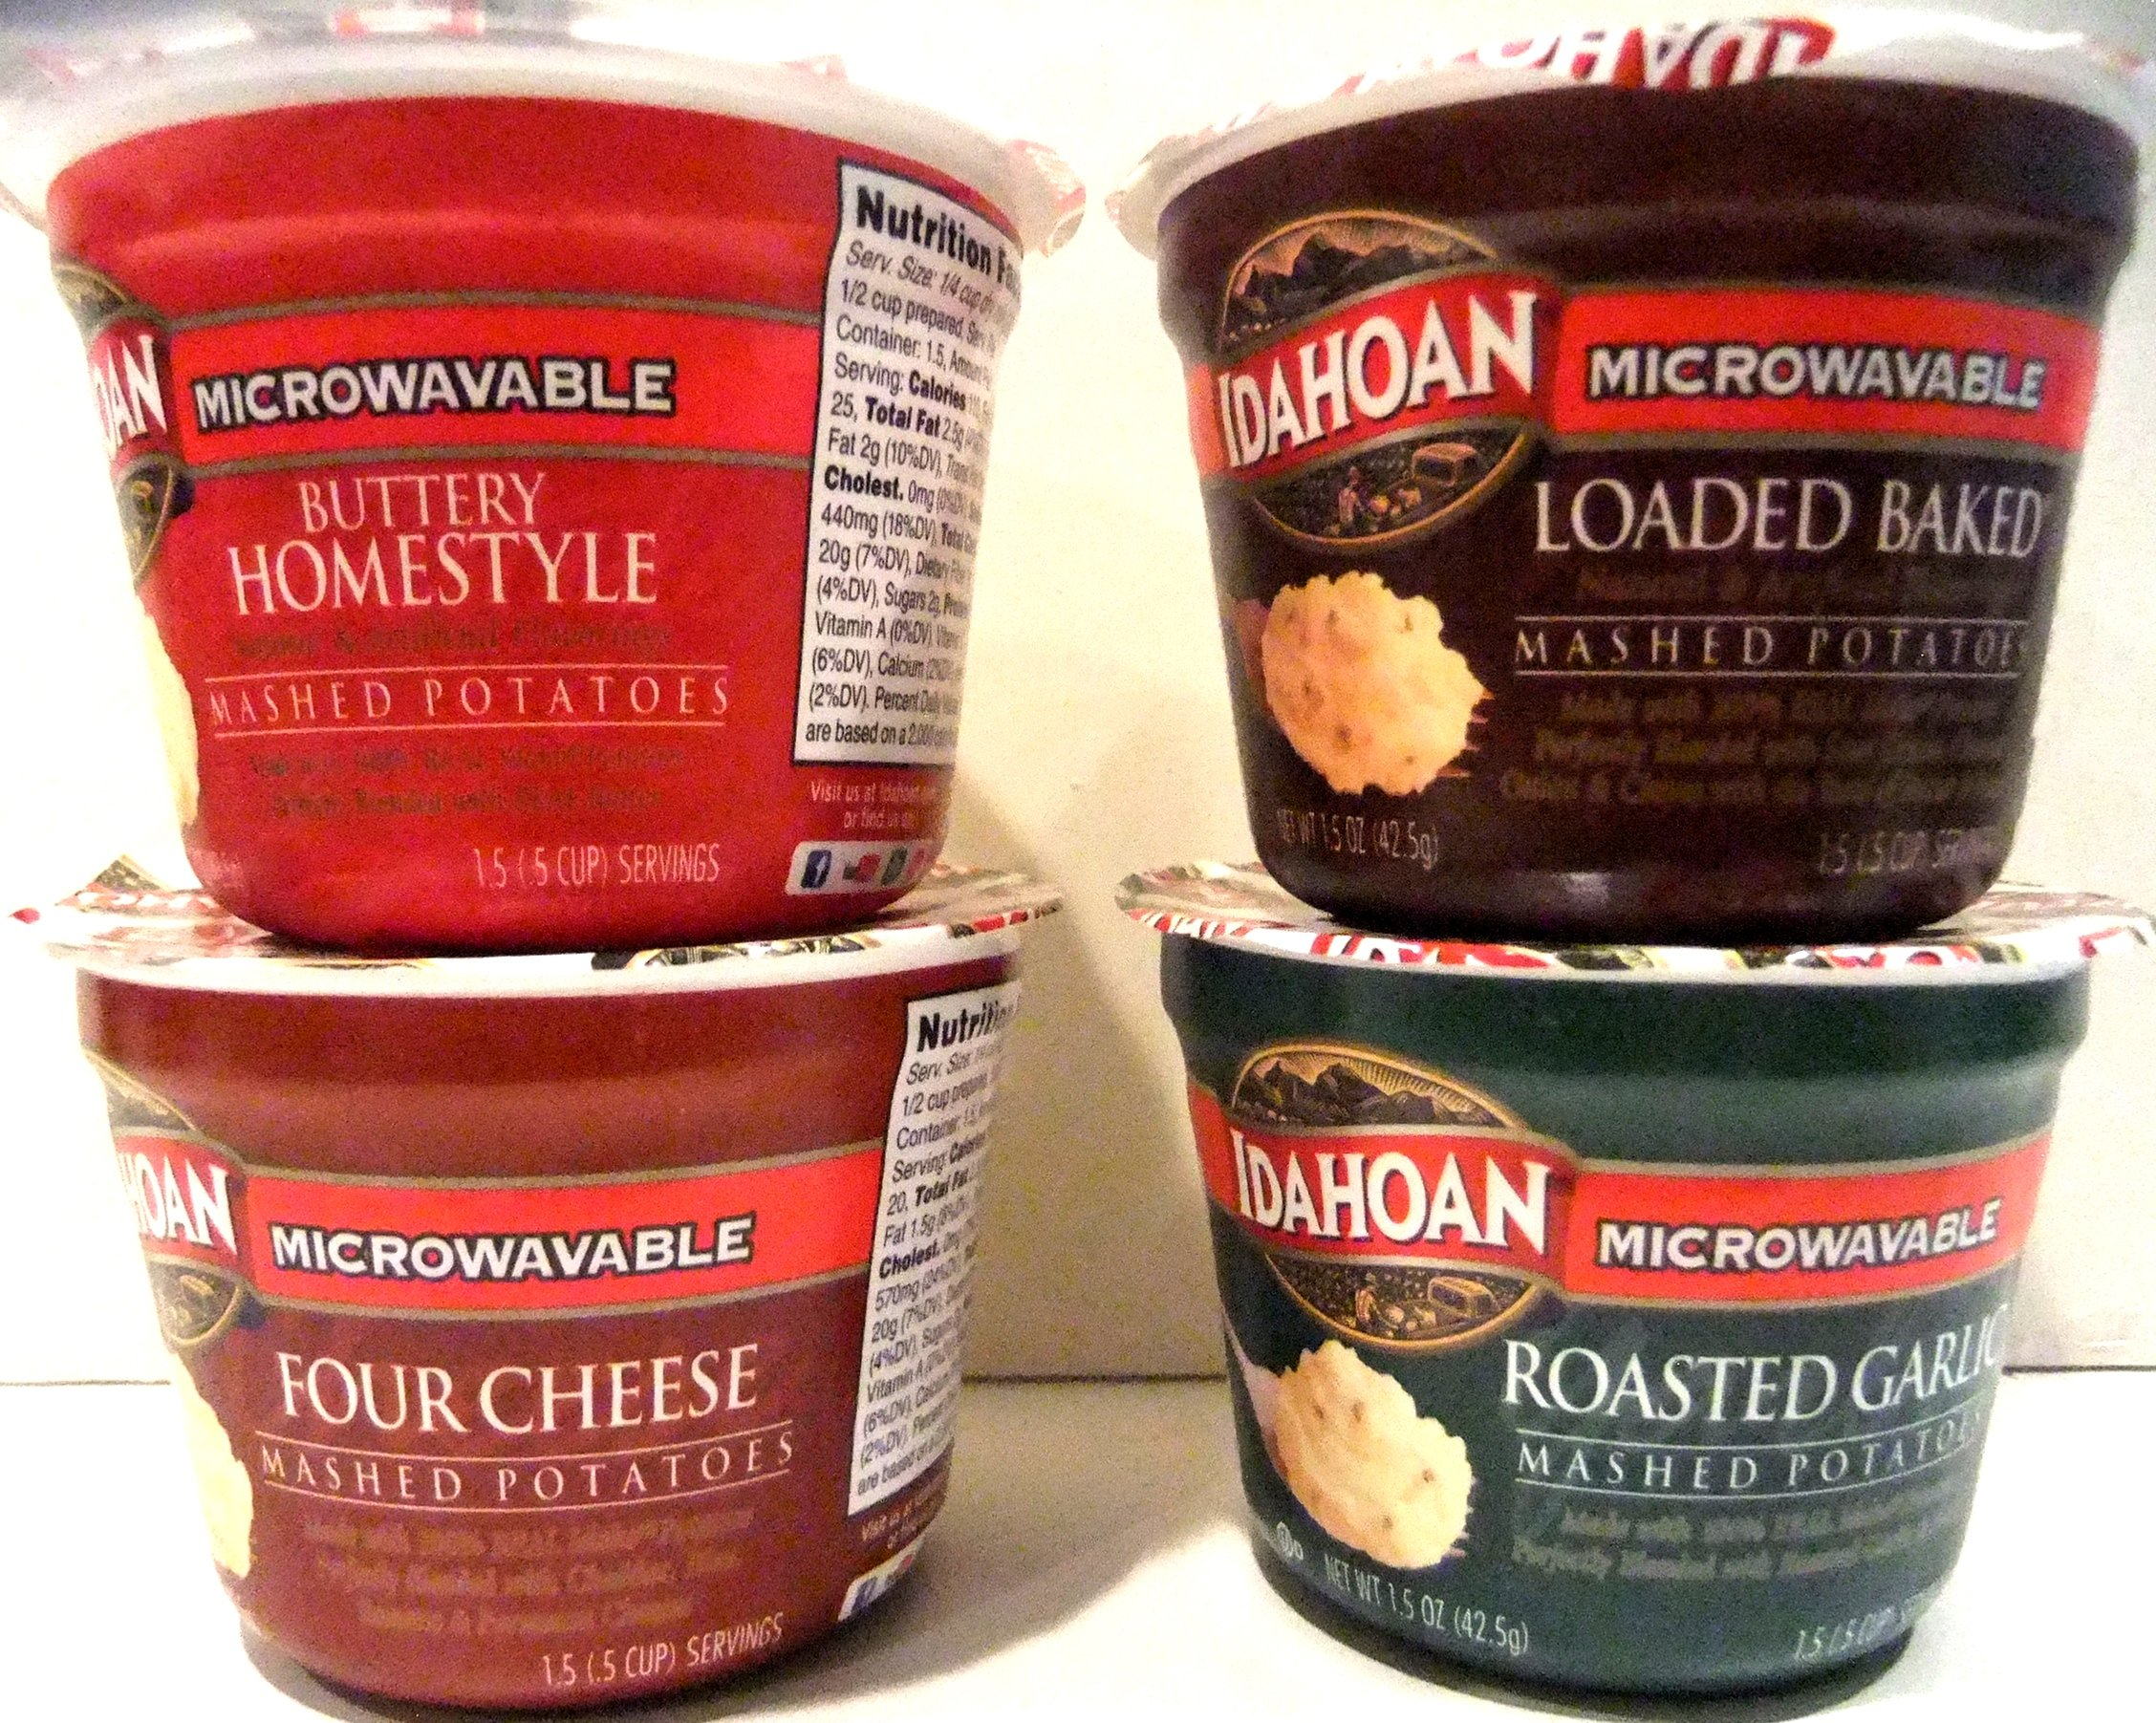 Idahoan Mashed Potatoes Microwavable Single Serve Cups VARIETY 16 PACK + FREE Pack of Heavy Duty Plastic Utensils. 4 Cups each of BUTTER HOMESTYLE, FOUR CHEESE, ROASTED GARLIC, LOADED BAKED (1.5 oz)